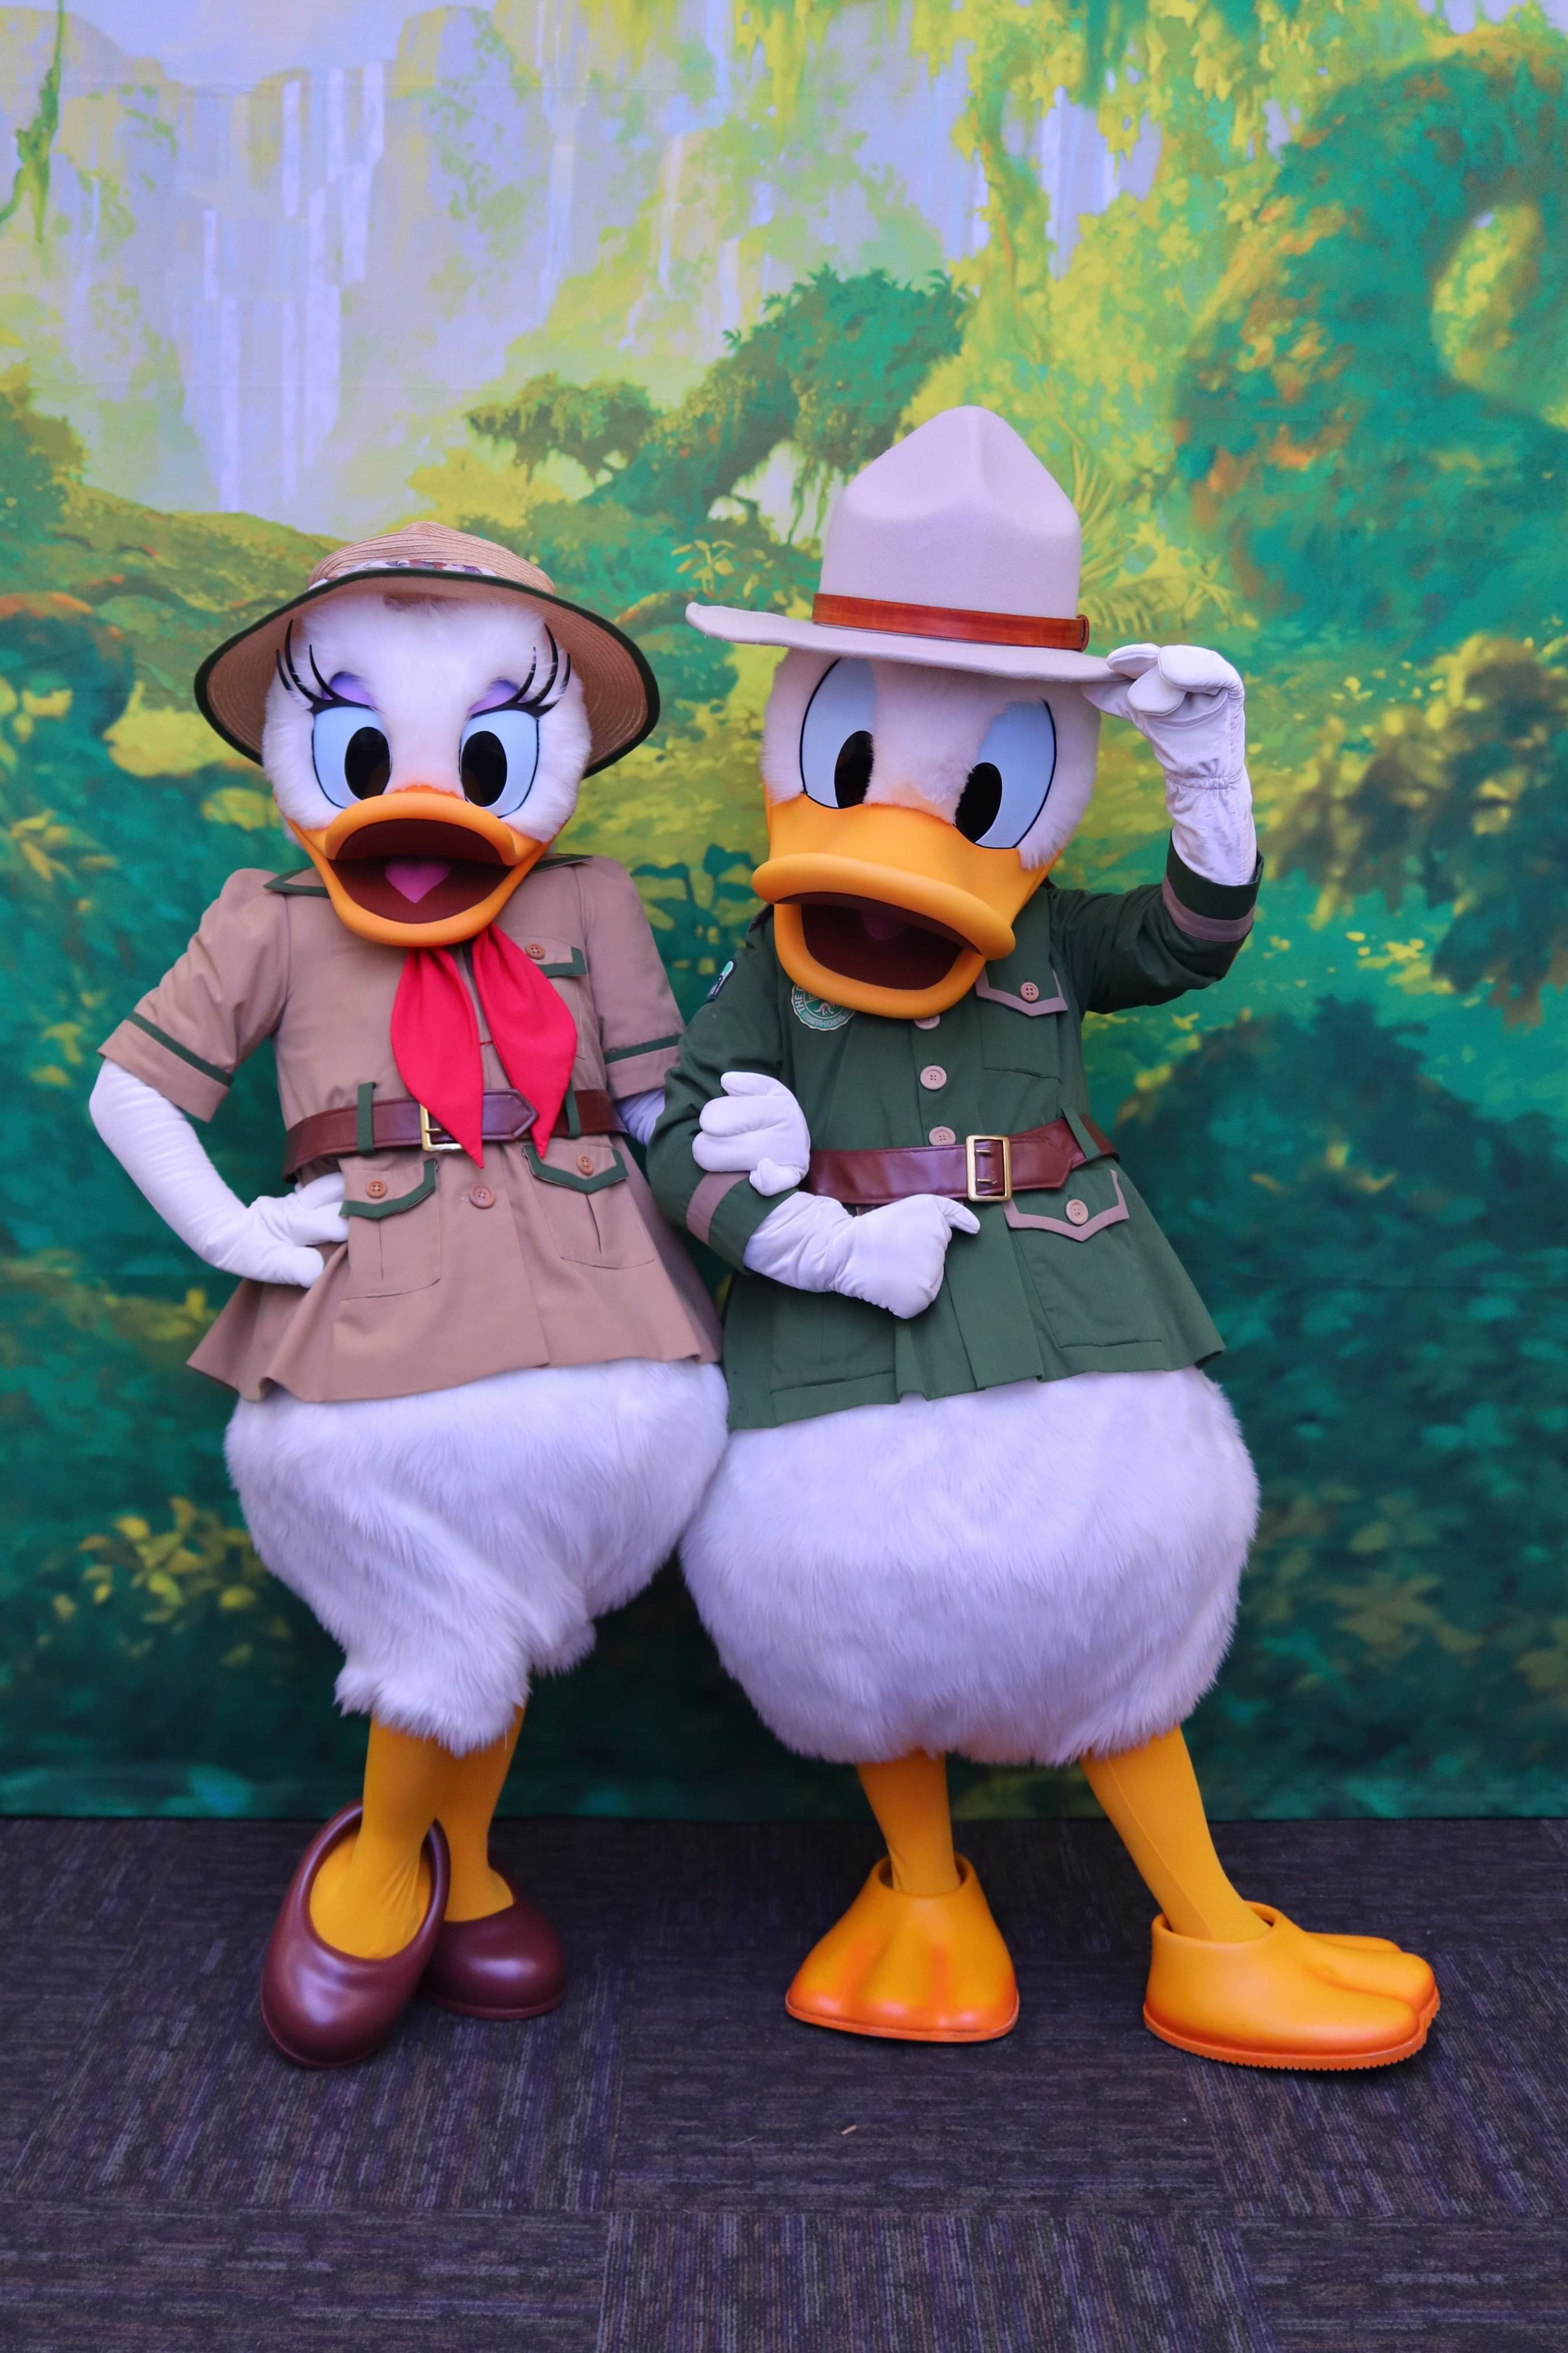 Daisy and Old Hat Donald